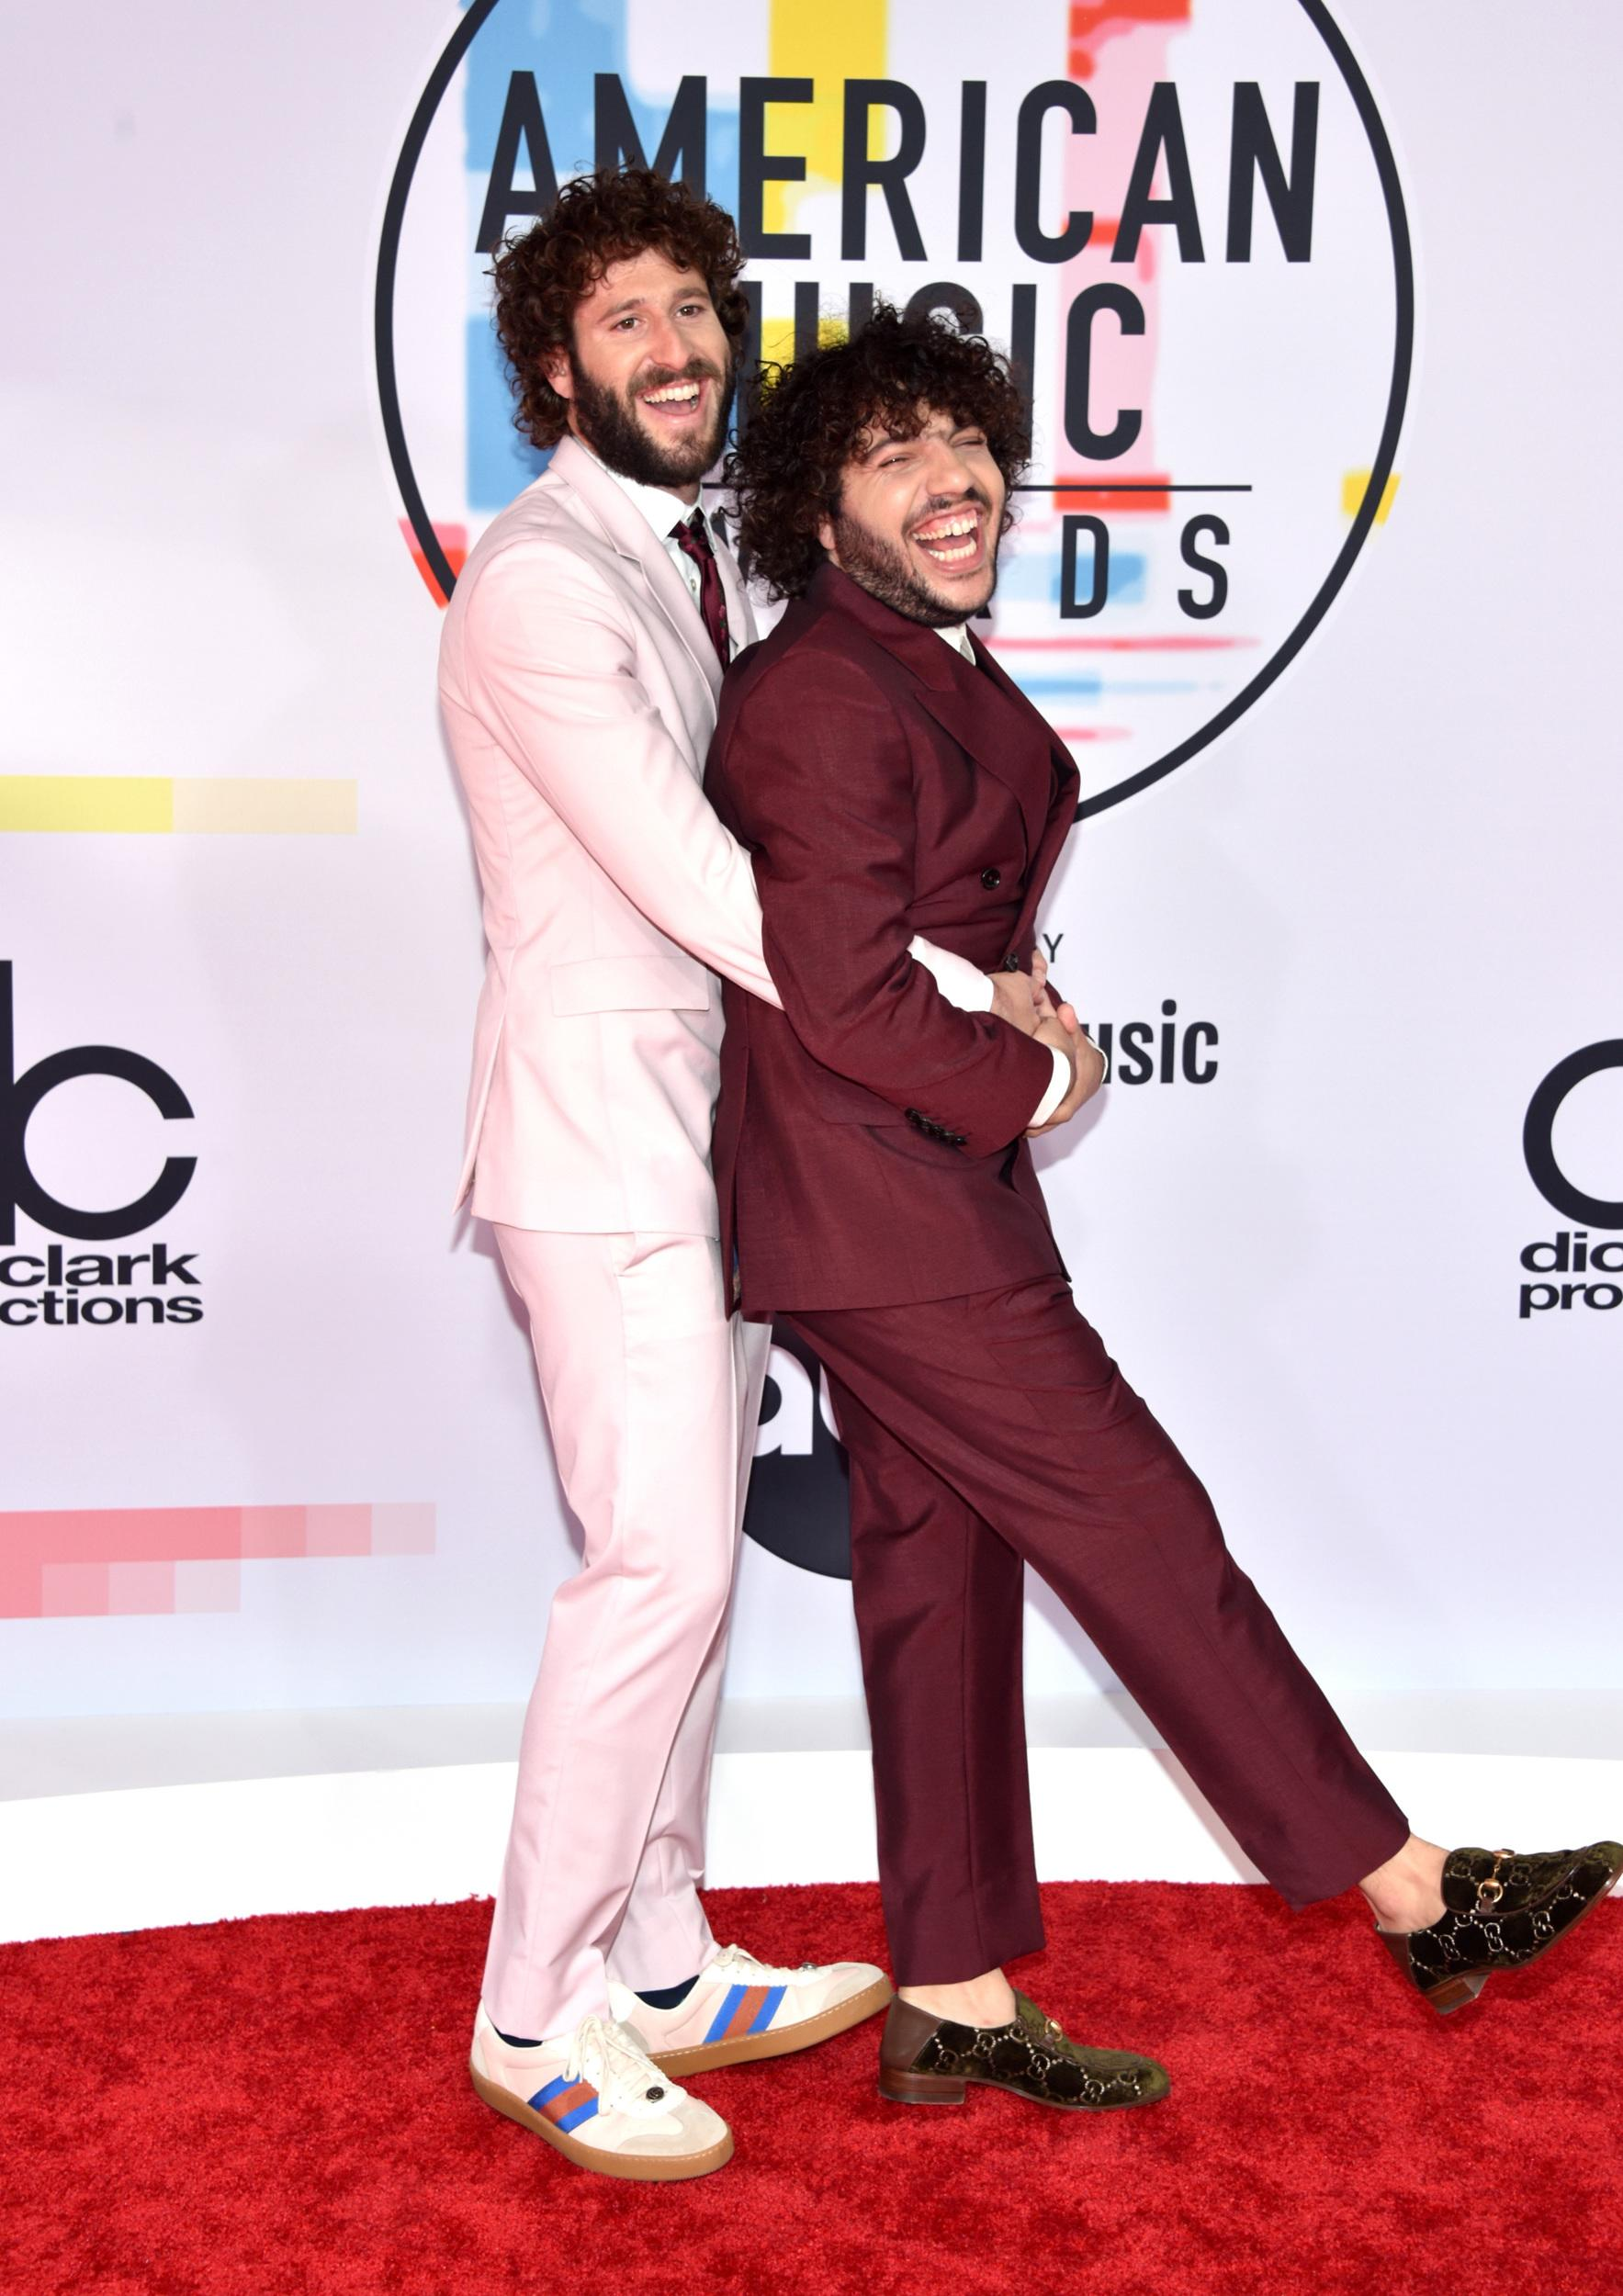 LOS ANGELES, CA - OCTOBER 09: Lil Dicky (L) and Benny Blanco attend the 2018 American Music Awards at Microsoft Theater on October 9, 2018 in Los Angeles, California. (Photo by John Shearer/Getty Images For dcp)